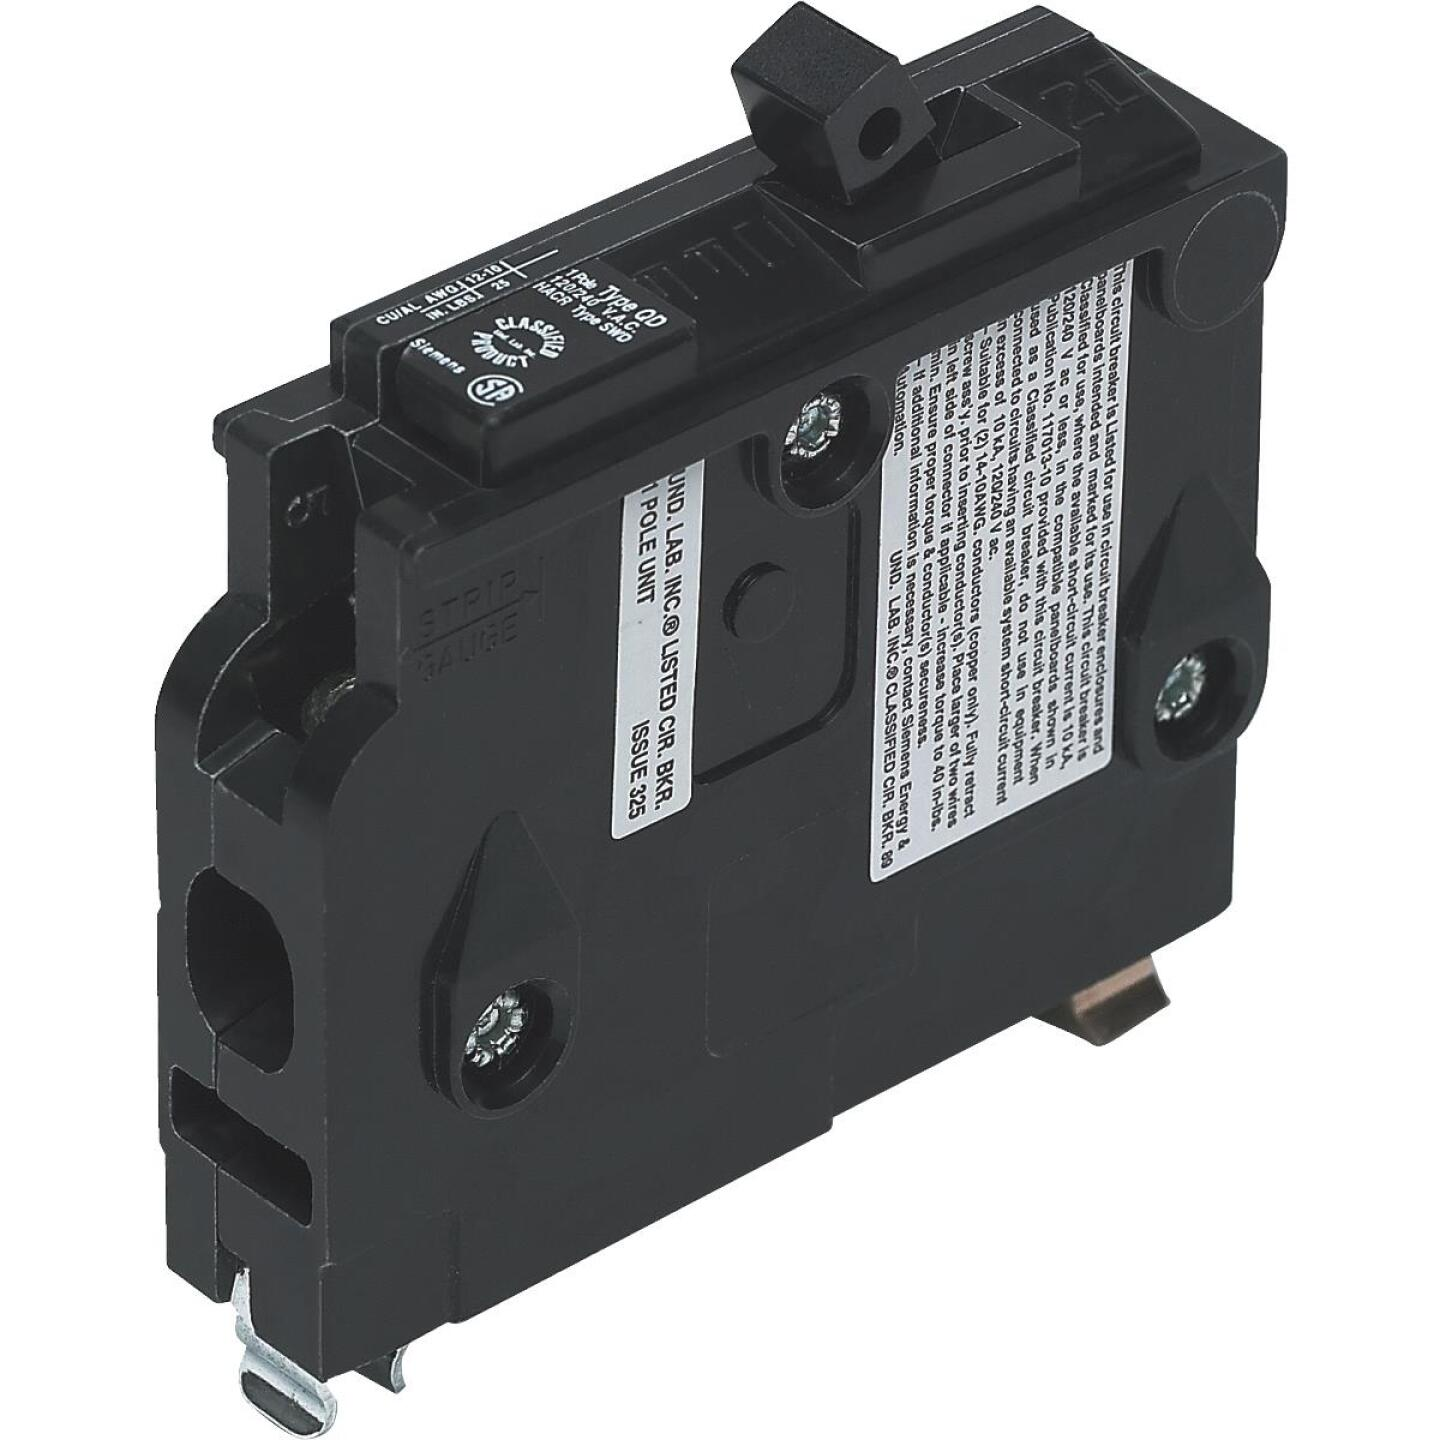 Connecticut Electric 15A Single-Pole Standard Trip Packaged Replacement Circuit Breaker For Square D Image 1